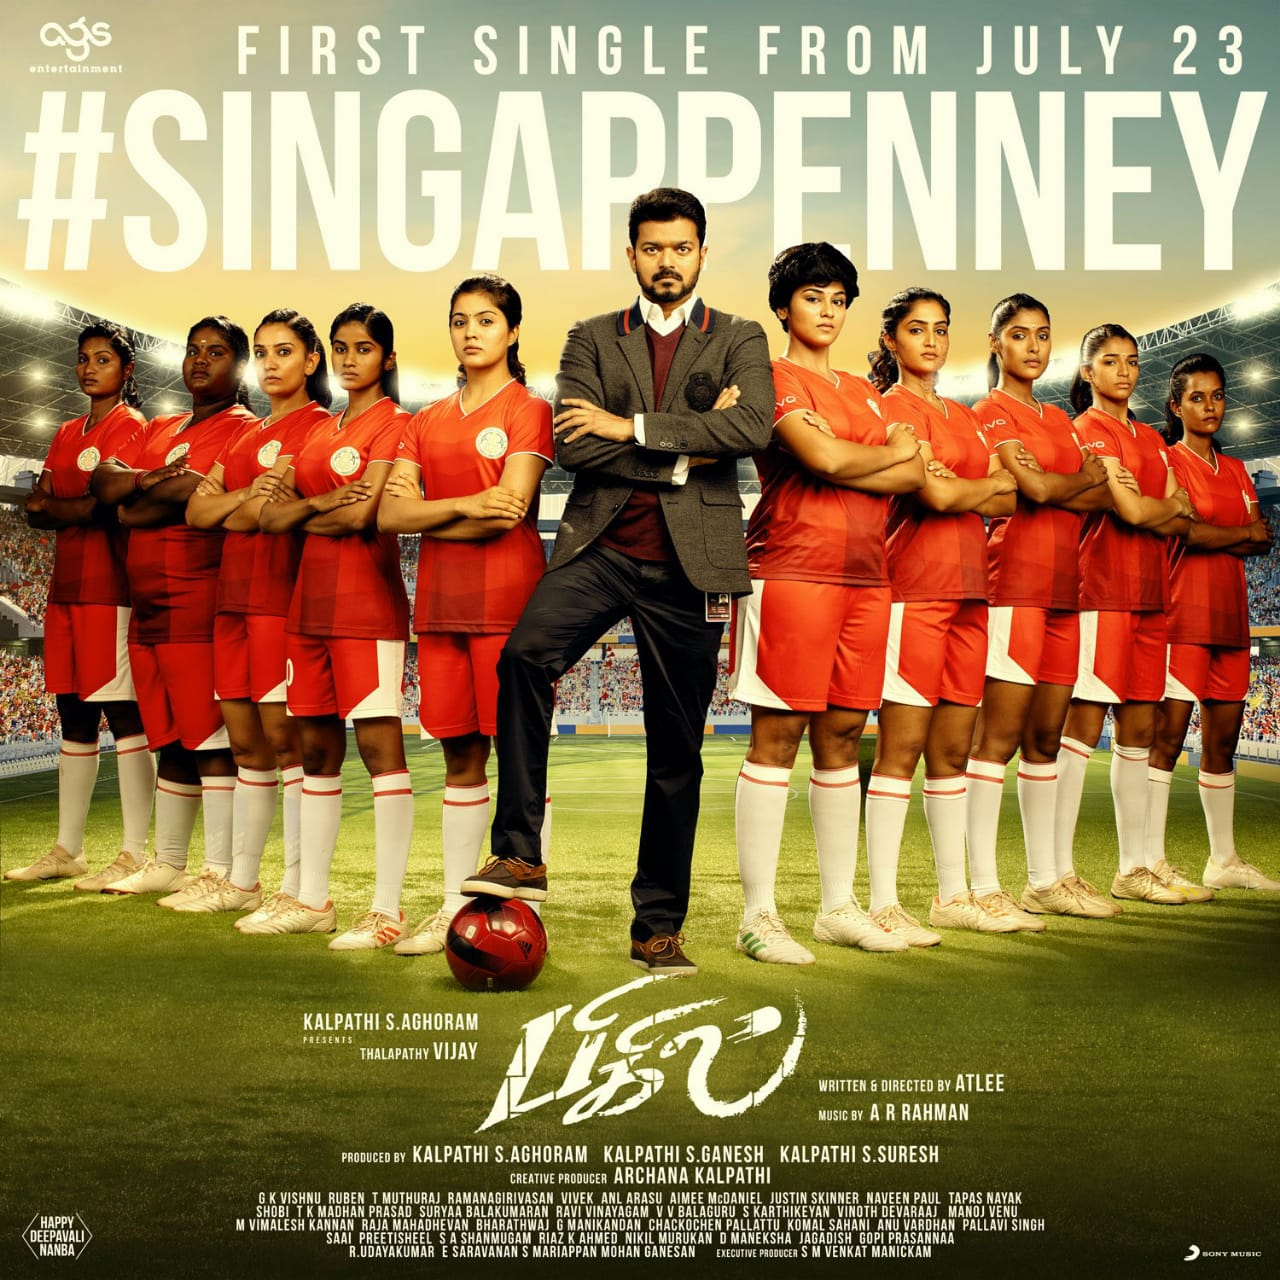 Singappenney song photo from bigil movie